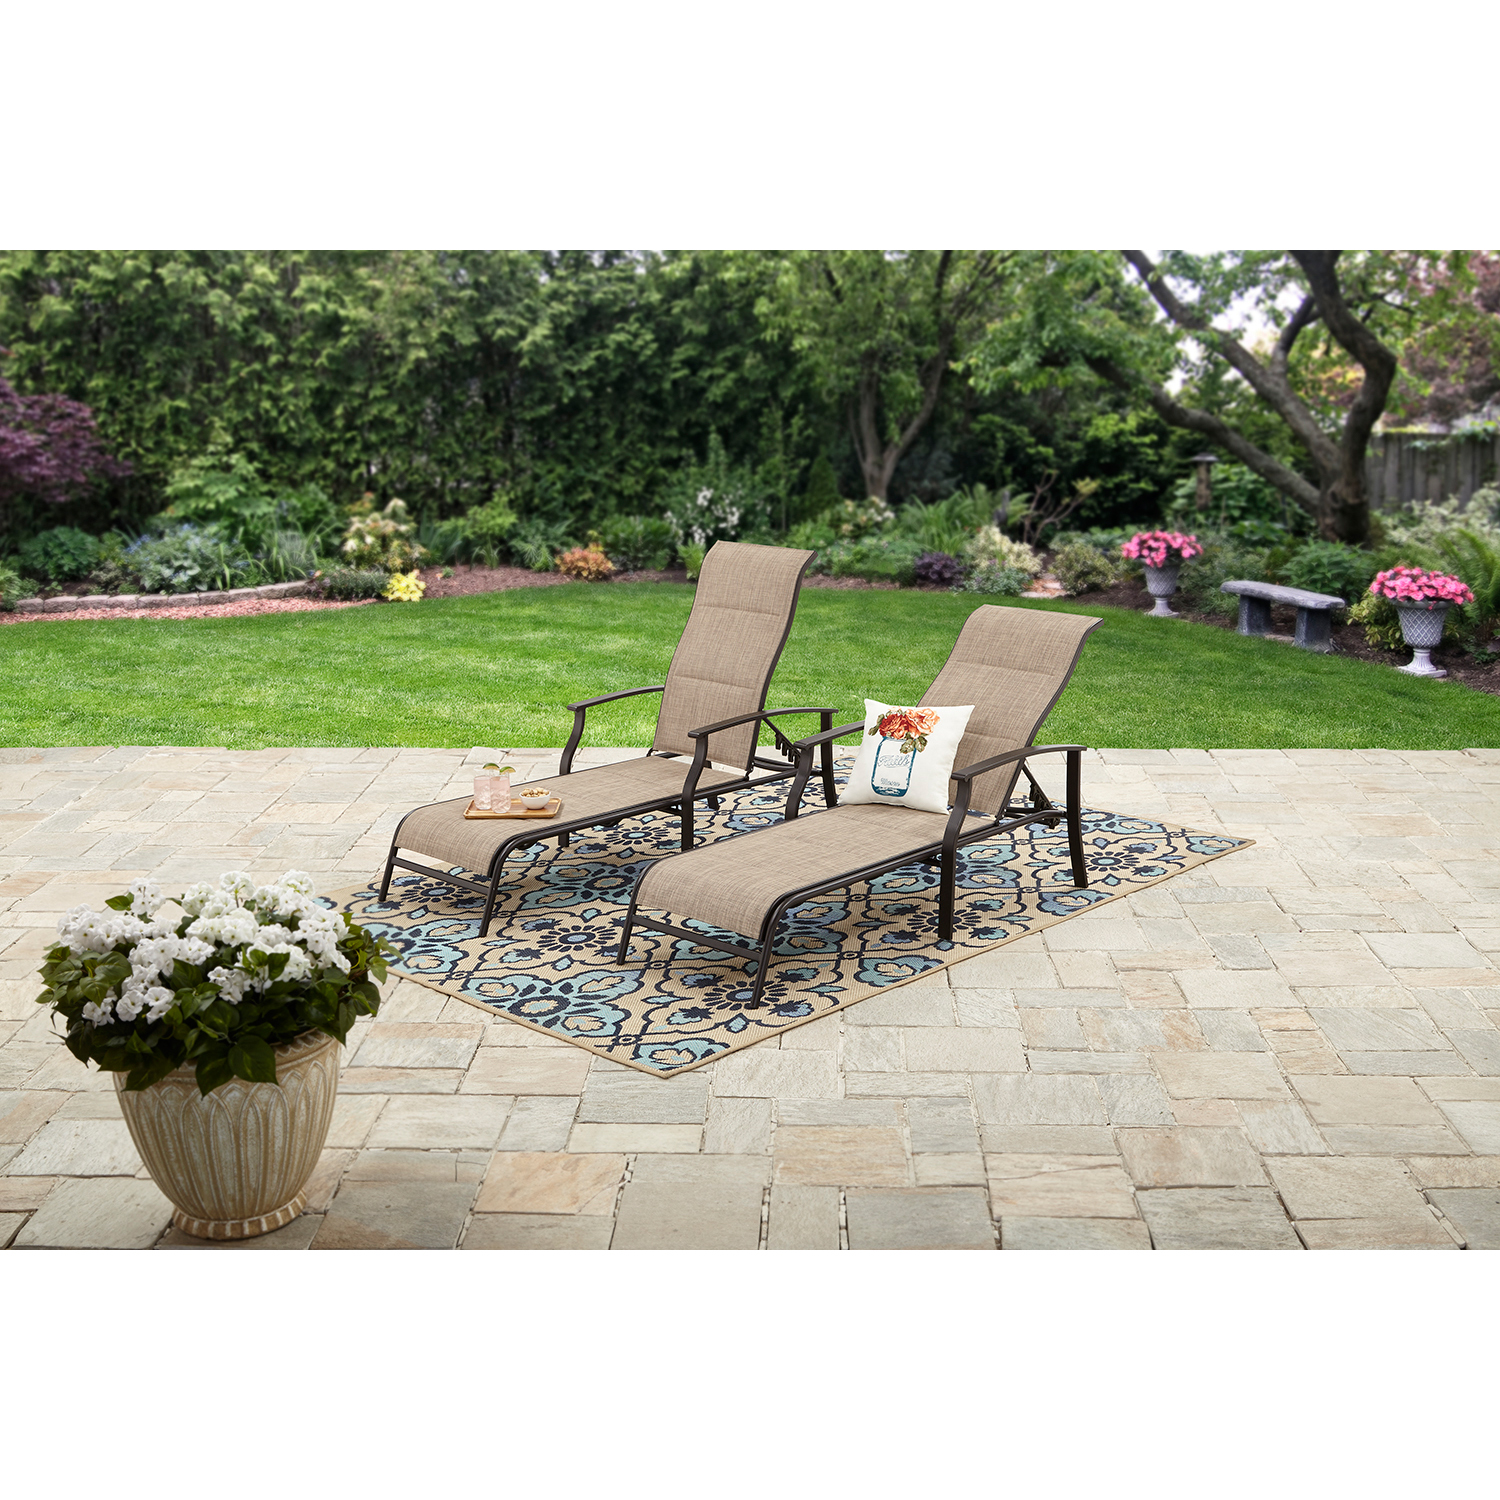 Mainstays Highland Knolls Outdoor Chaise Lounges, Set of 2